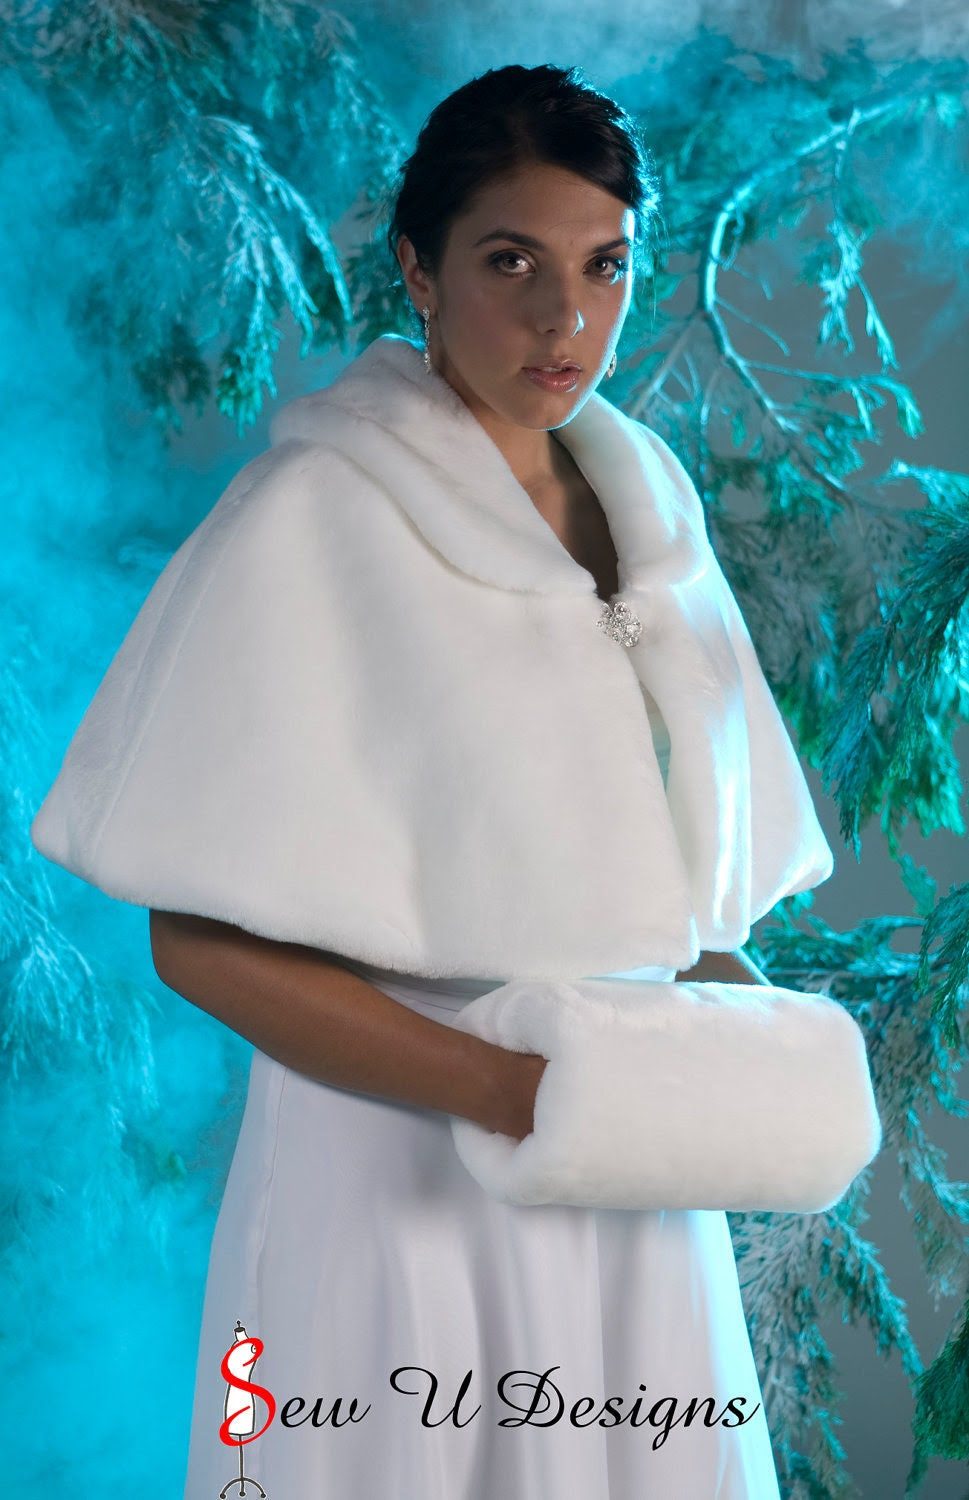 Faux fur capelet with matching muff White Winter wedding cape capelette regular size handwarmer Available in White or Black faux fur beaver